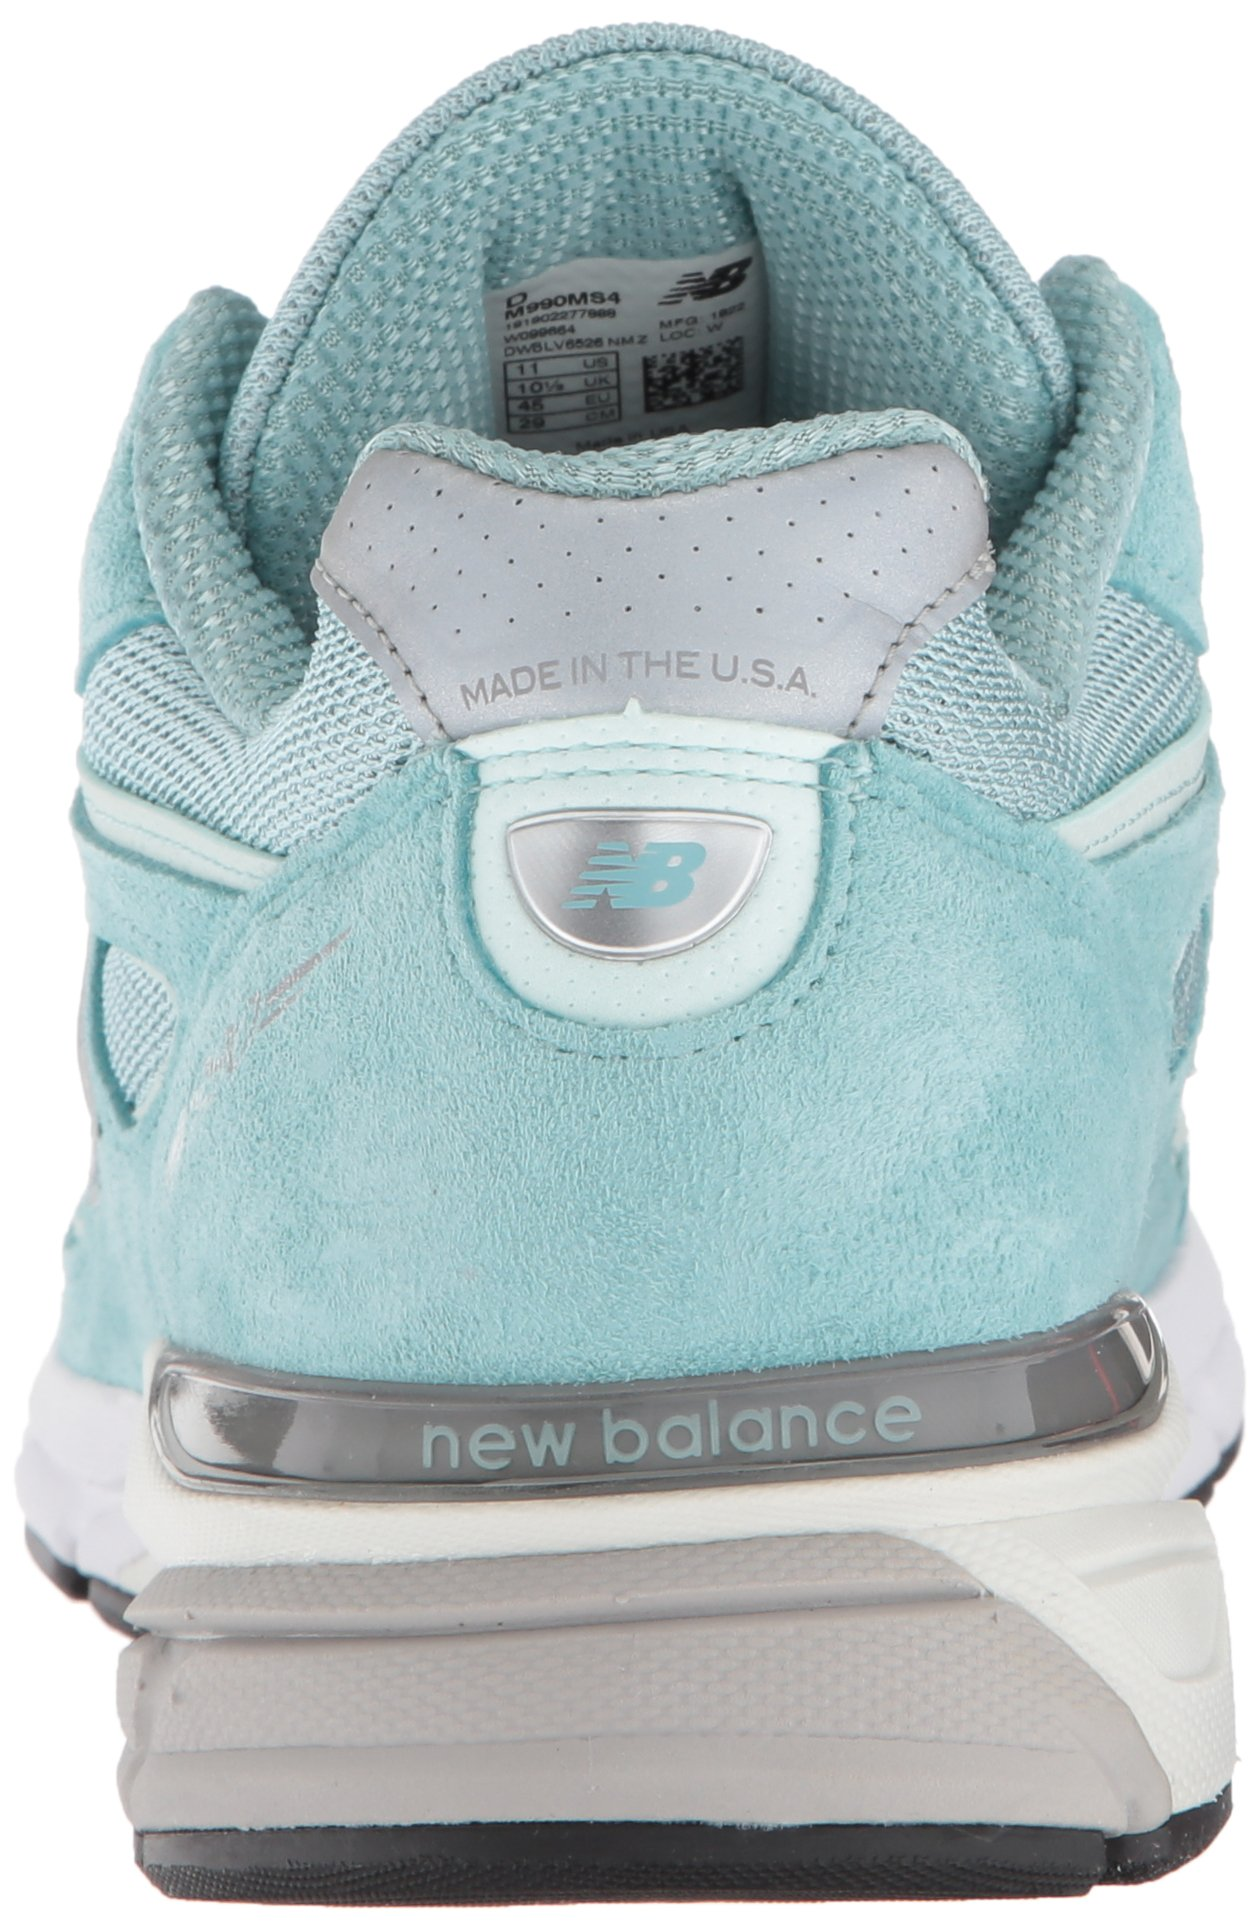 New Balance Men's 990v4, Green/White, 7 D US by New Balance (Image #2)